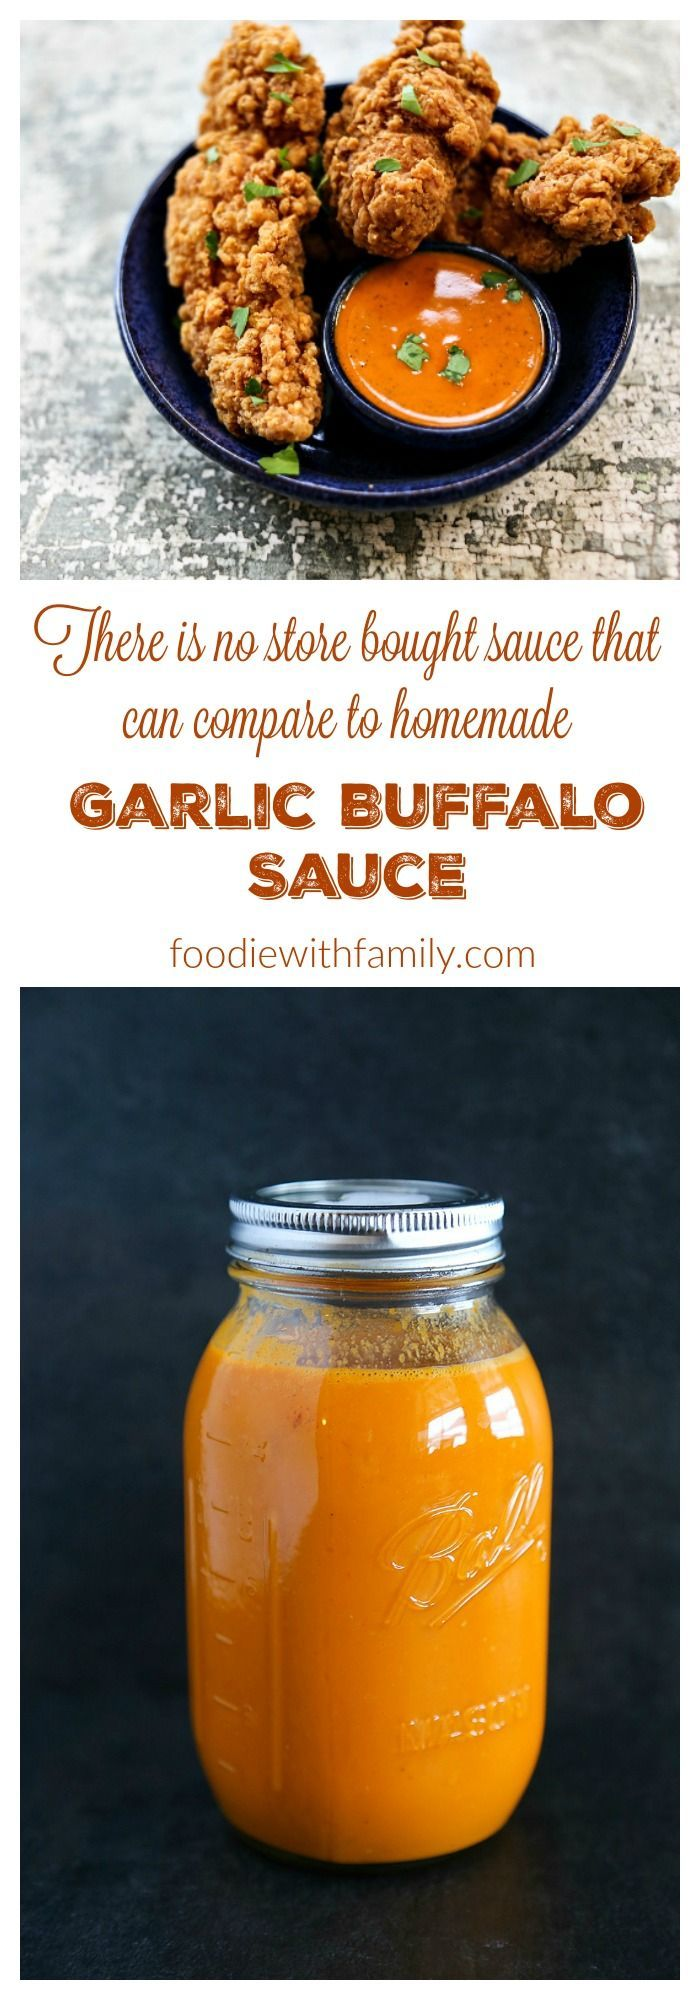 Garlic Buffalo Sauce Recipe because homemade is infinitely better than store bought! (Garlic Butter Wings)